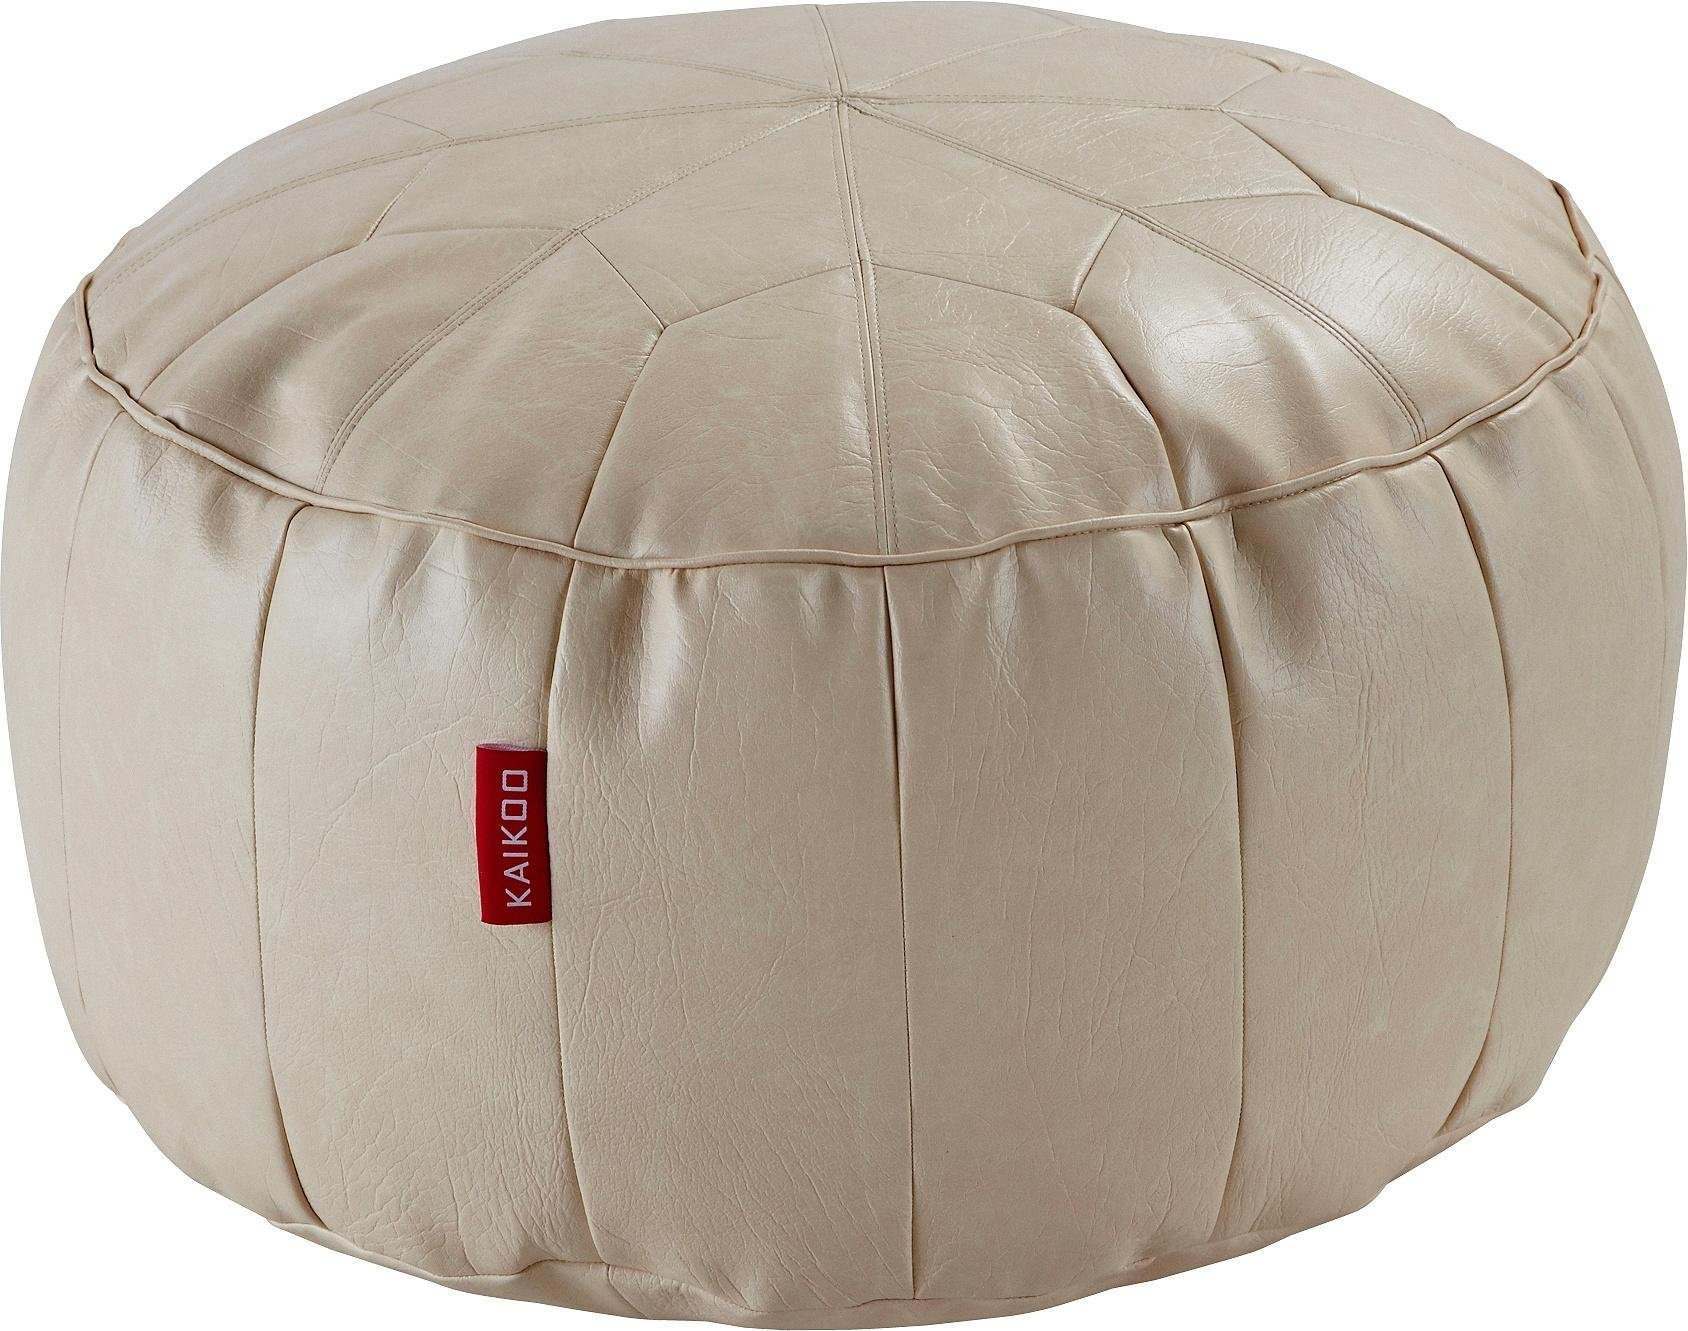 HOME - Moroccan - Leather Effect Footstool - Cream